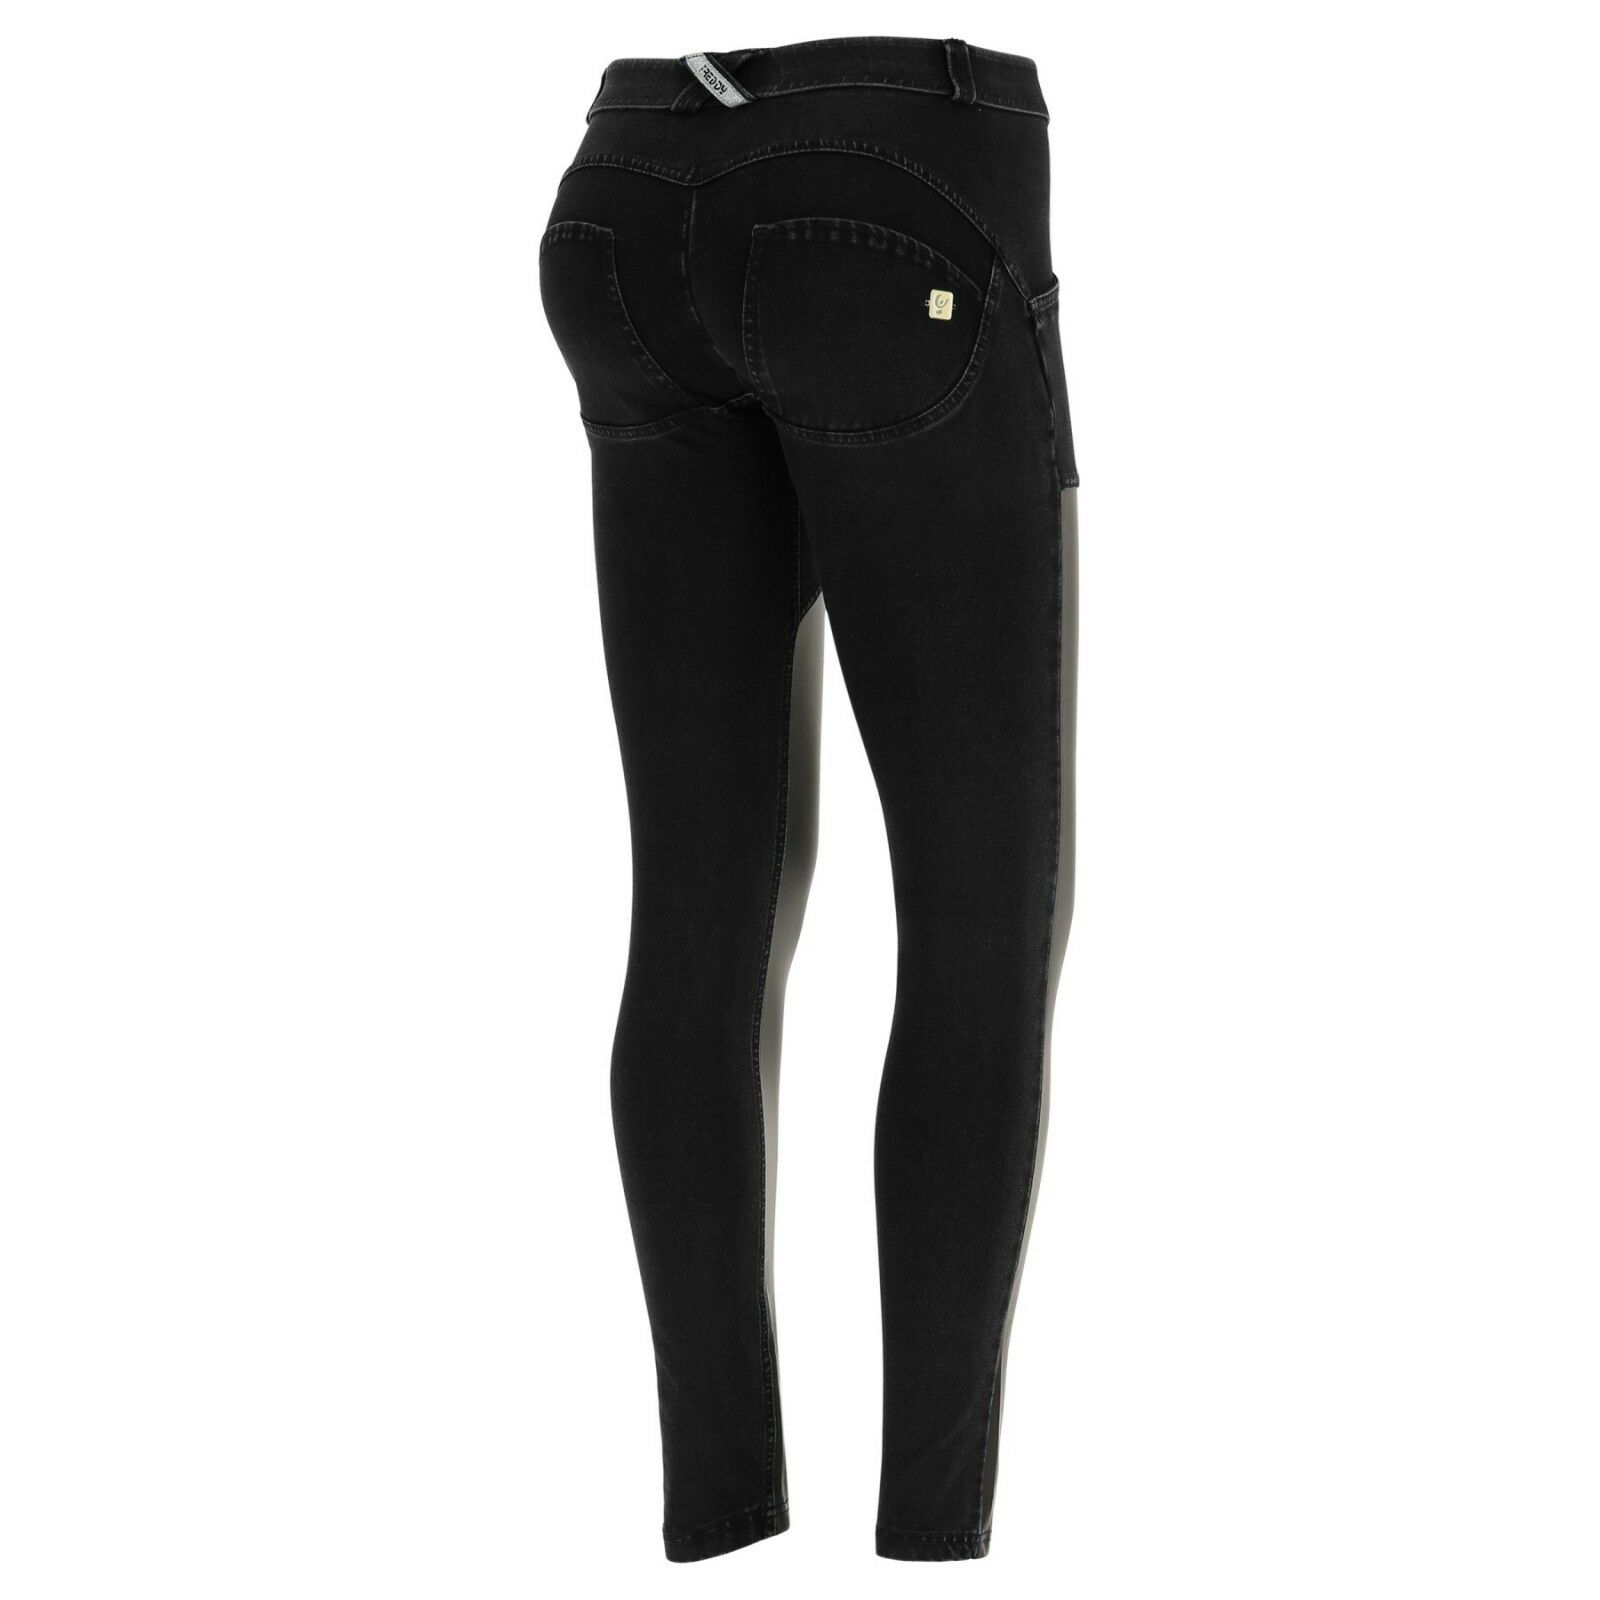 SCONTO SCONTO SCONTO 10% FREDDY WR.UP PANTALONE PUSH UP WRUP1RF801 JEANS INSERTI ECOPELLE 8cced7